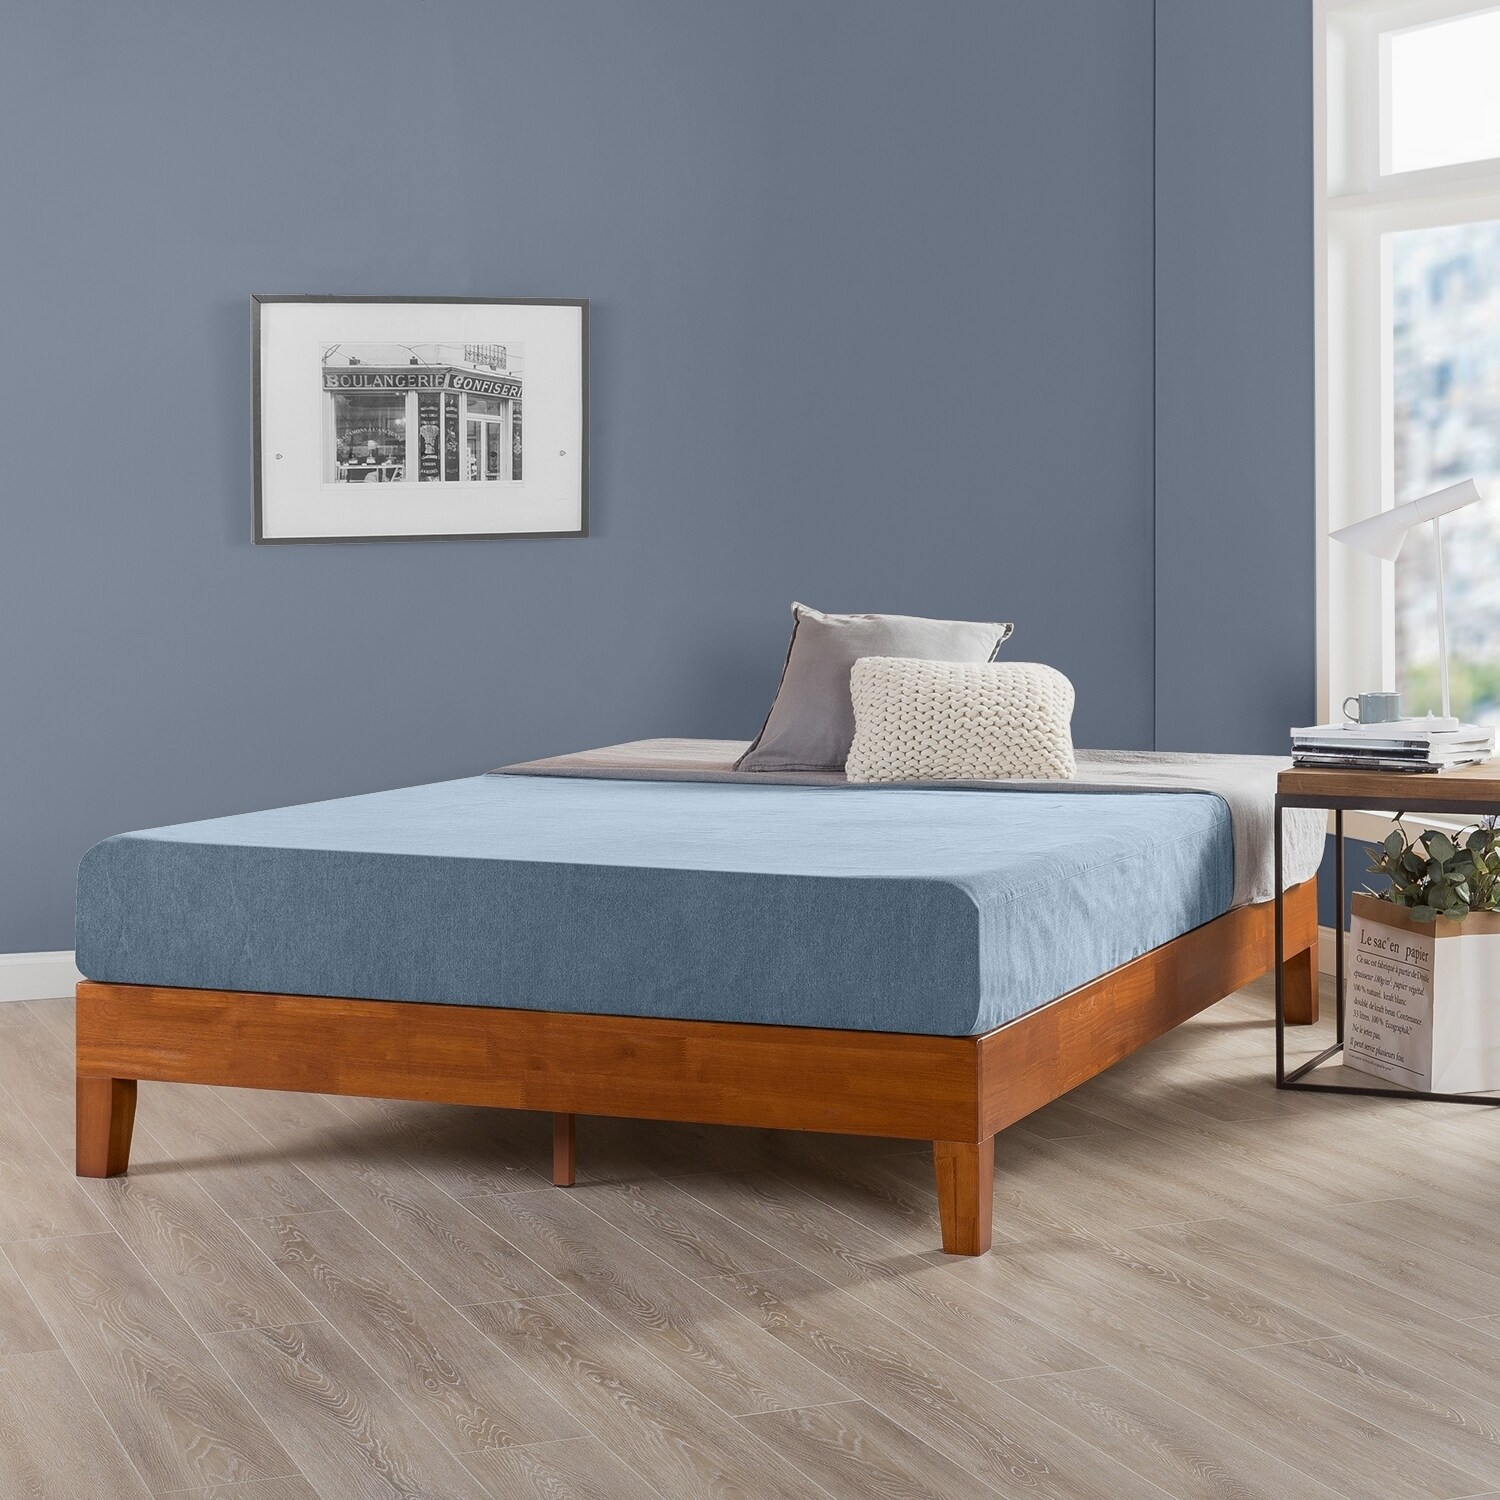 Full Size 12 Inch Grand Solid Wood Platform Bed Frame, Cherry - Crown Comfort (Full - Casual/Traditional/Modern & Contemporary - Wood)